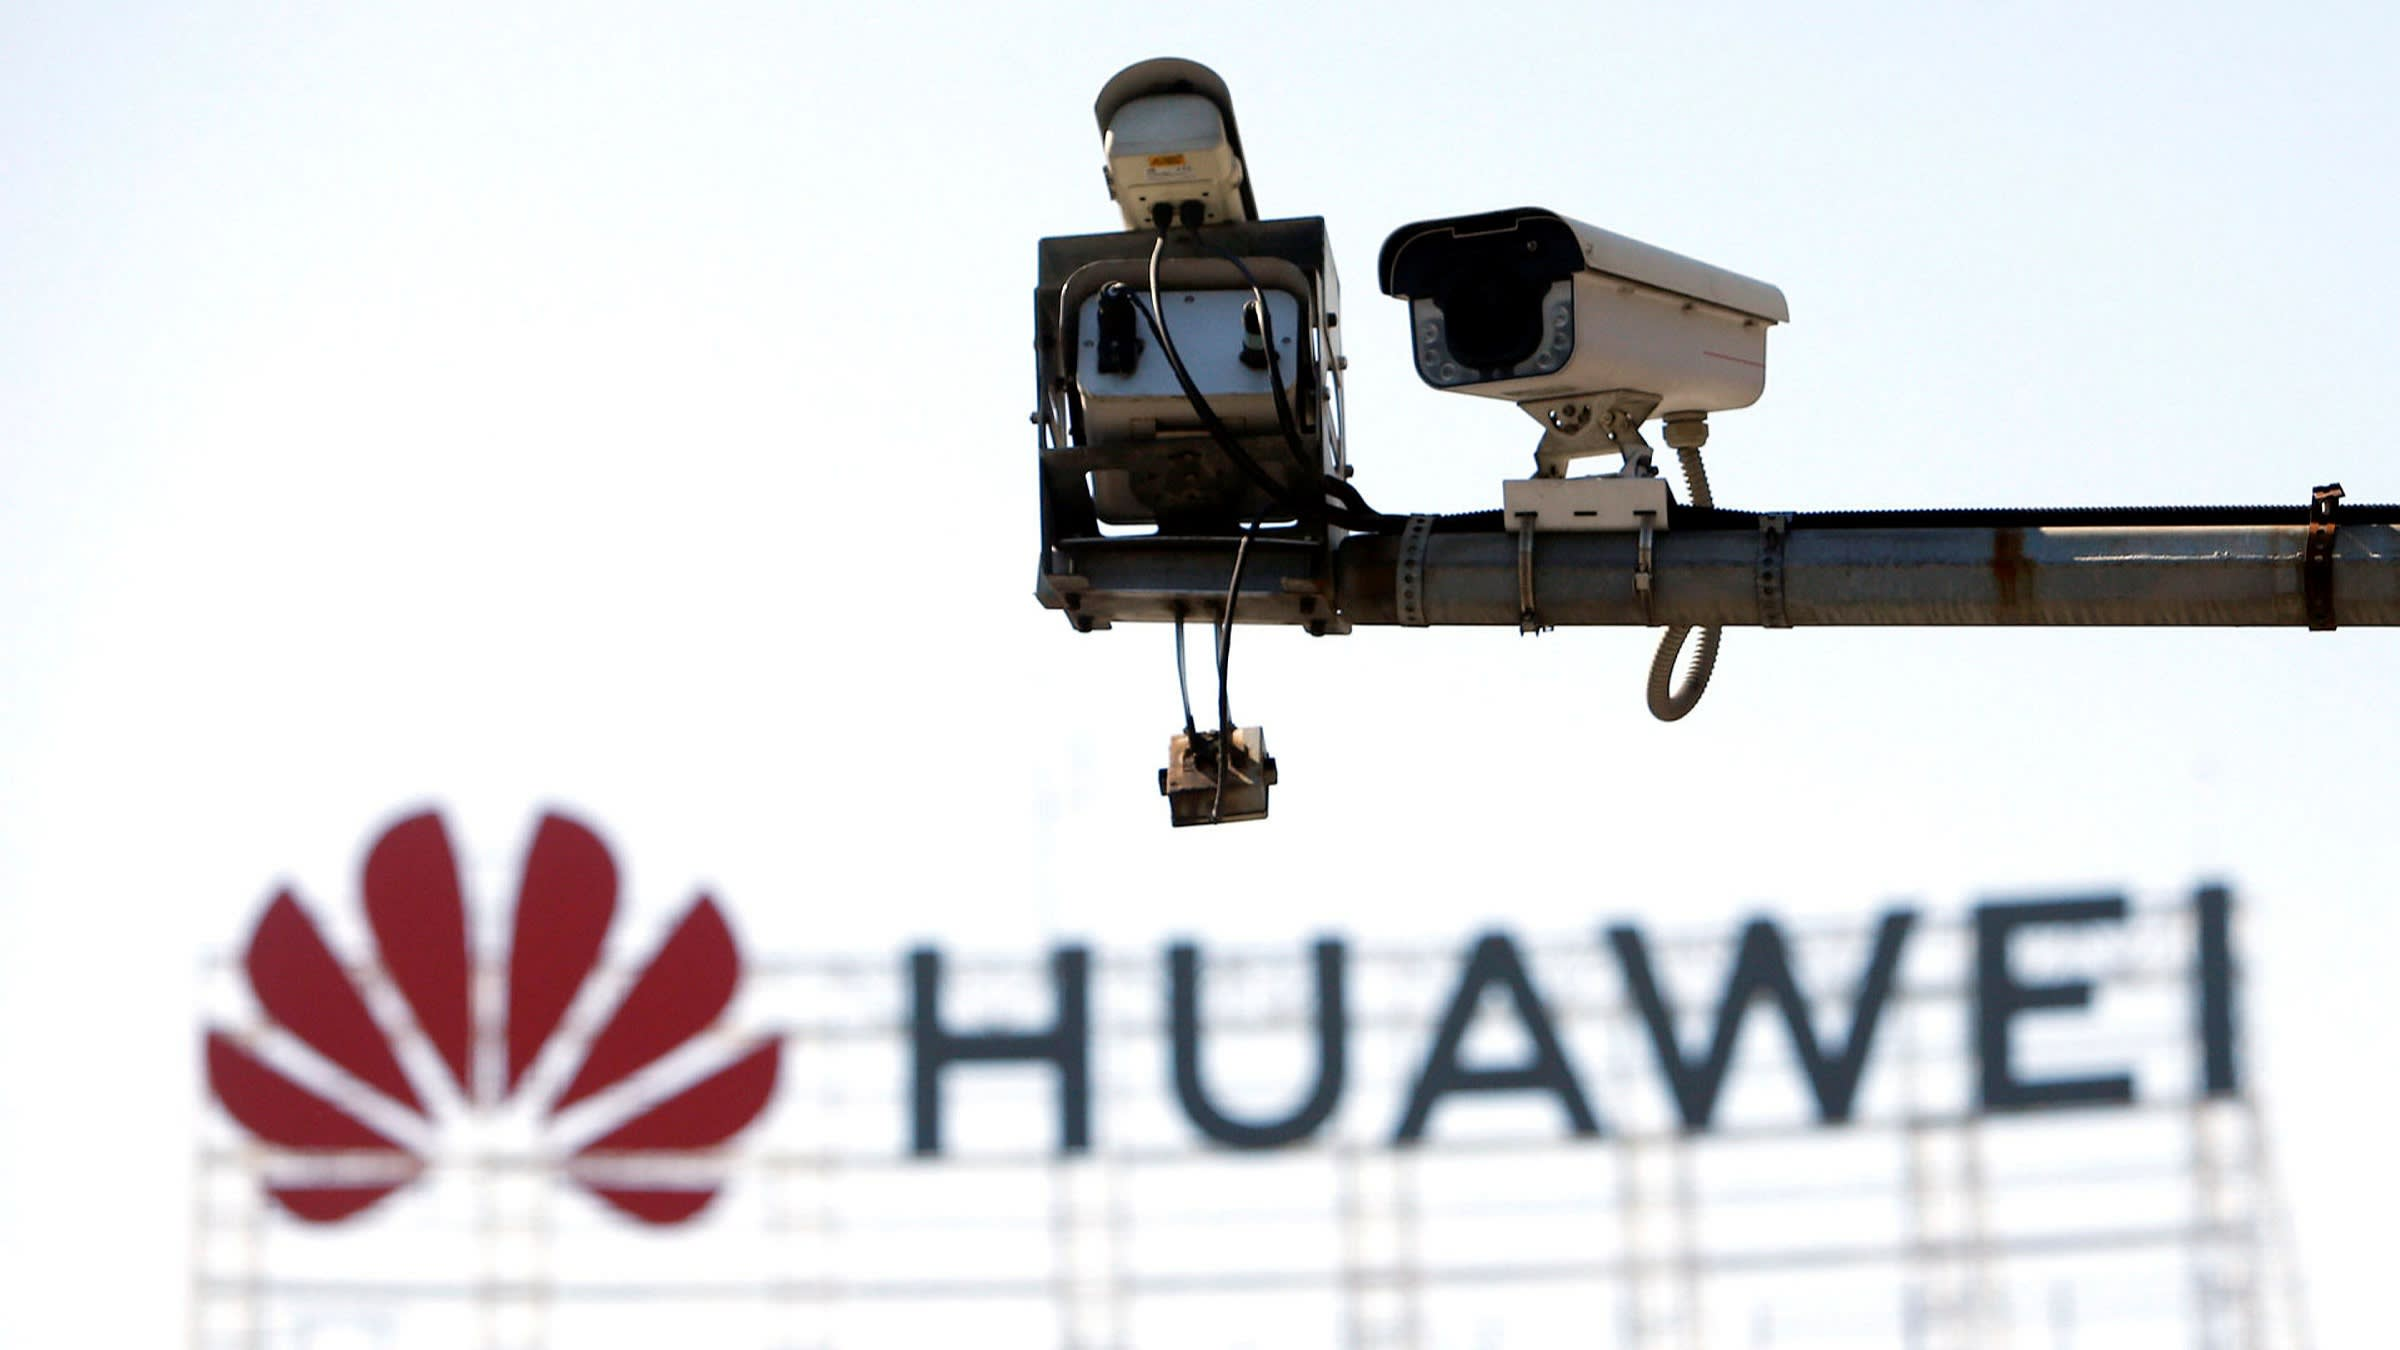 Developing countries have signed Huawei agreements despite warnings of U.S. espionage